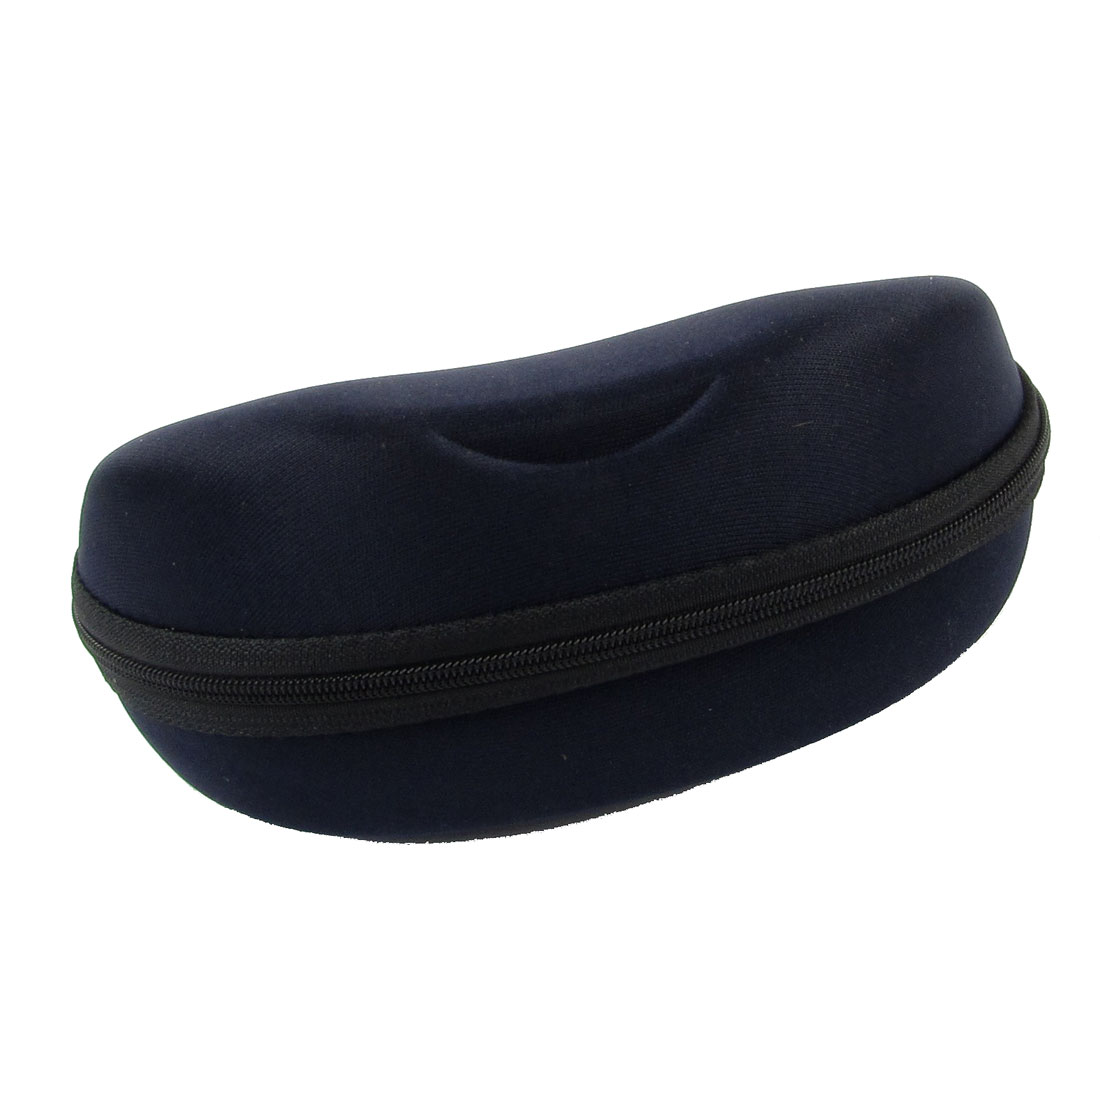 "Navy Blue Sunglasses Eyewear Safety Box Zipper Closure Case 2.8"" High"